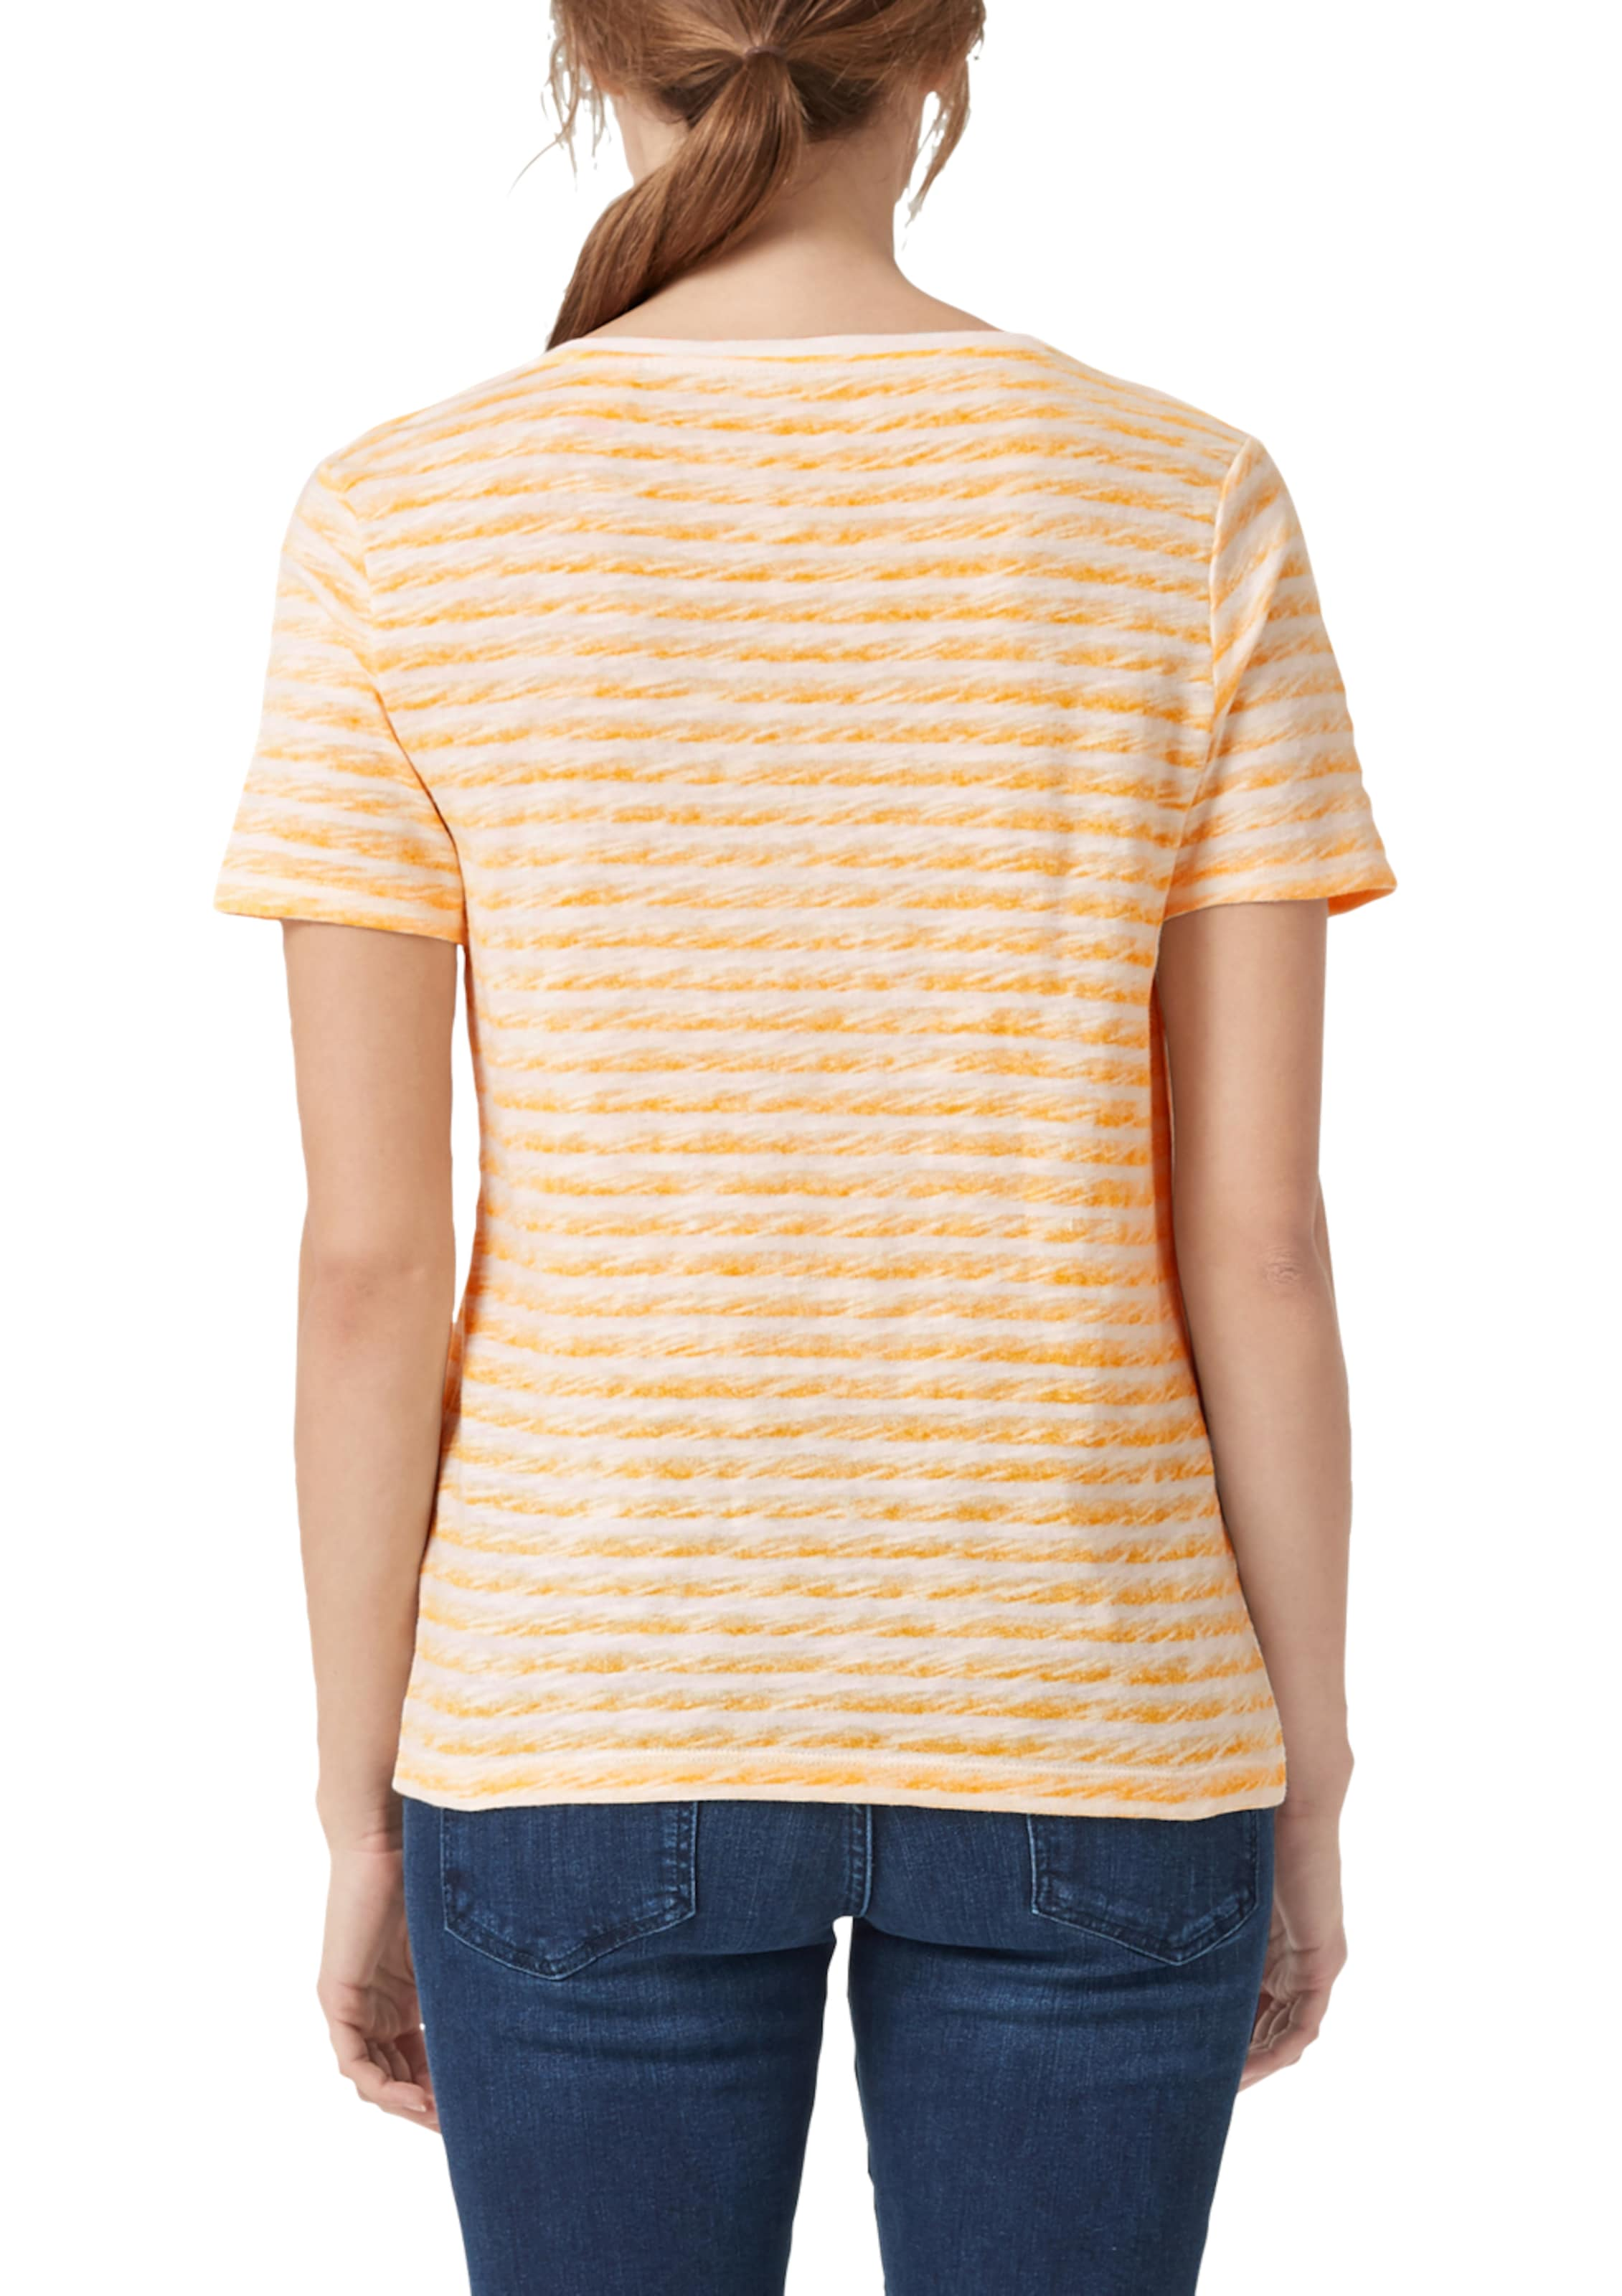 Red oliver S Shirt In ApricotWeiß Label m8wPyvNn0O